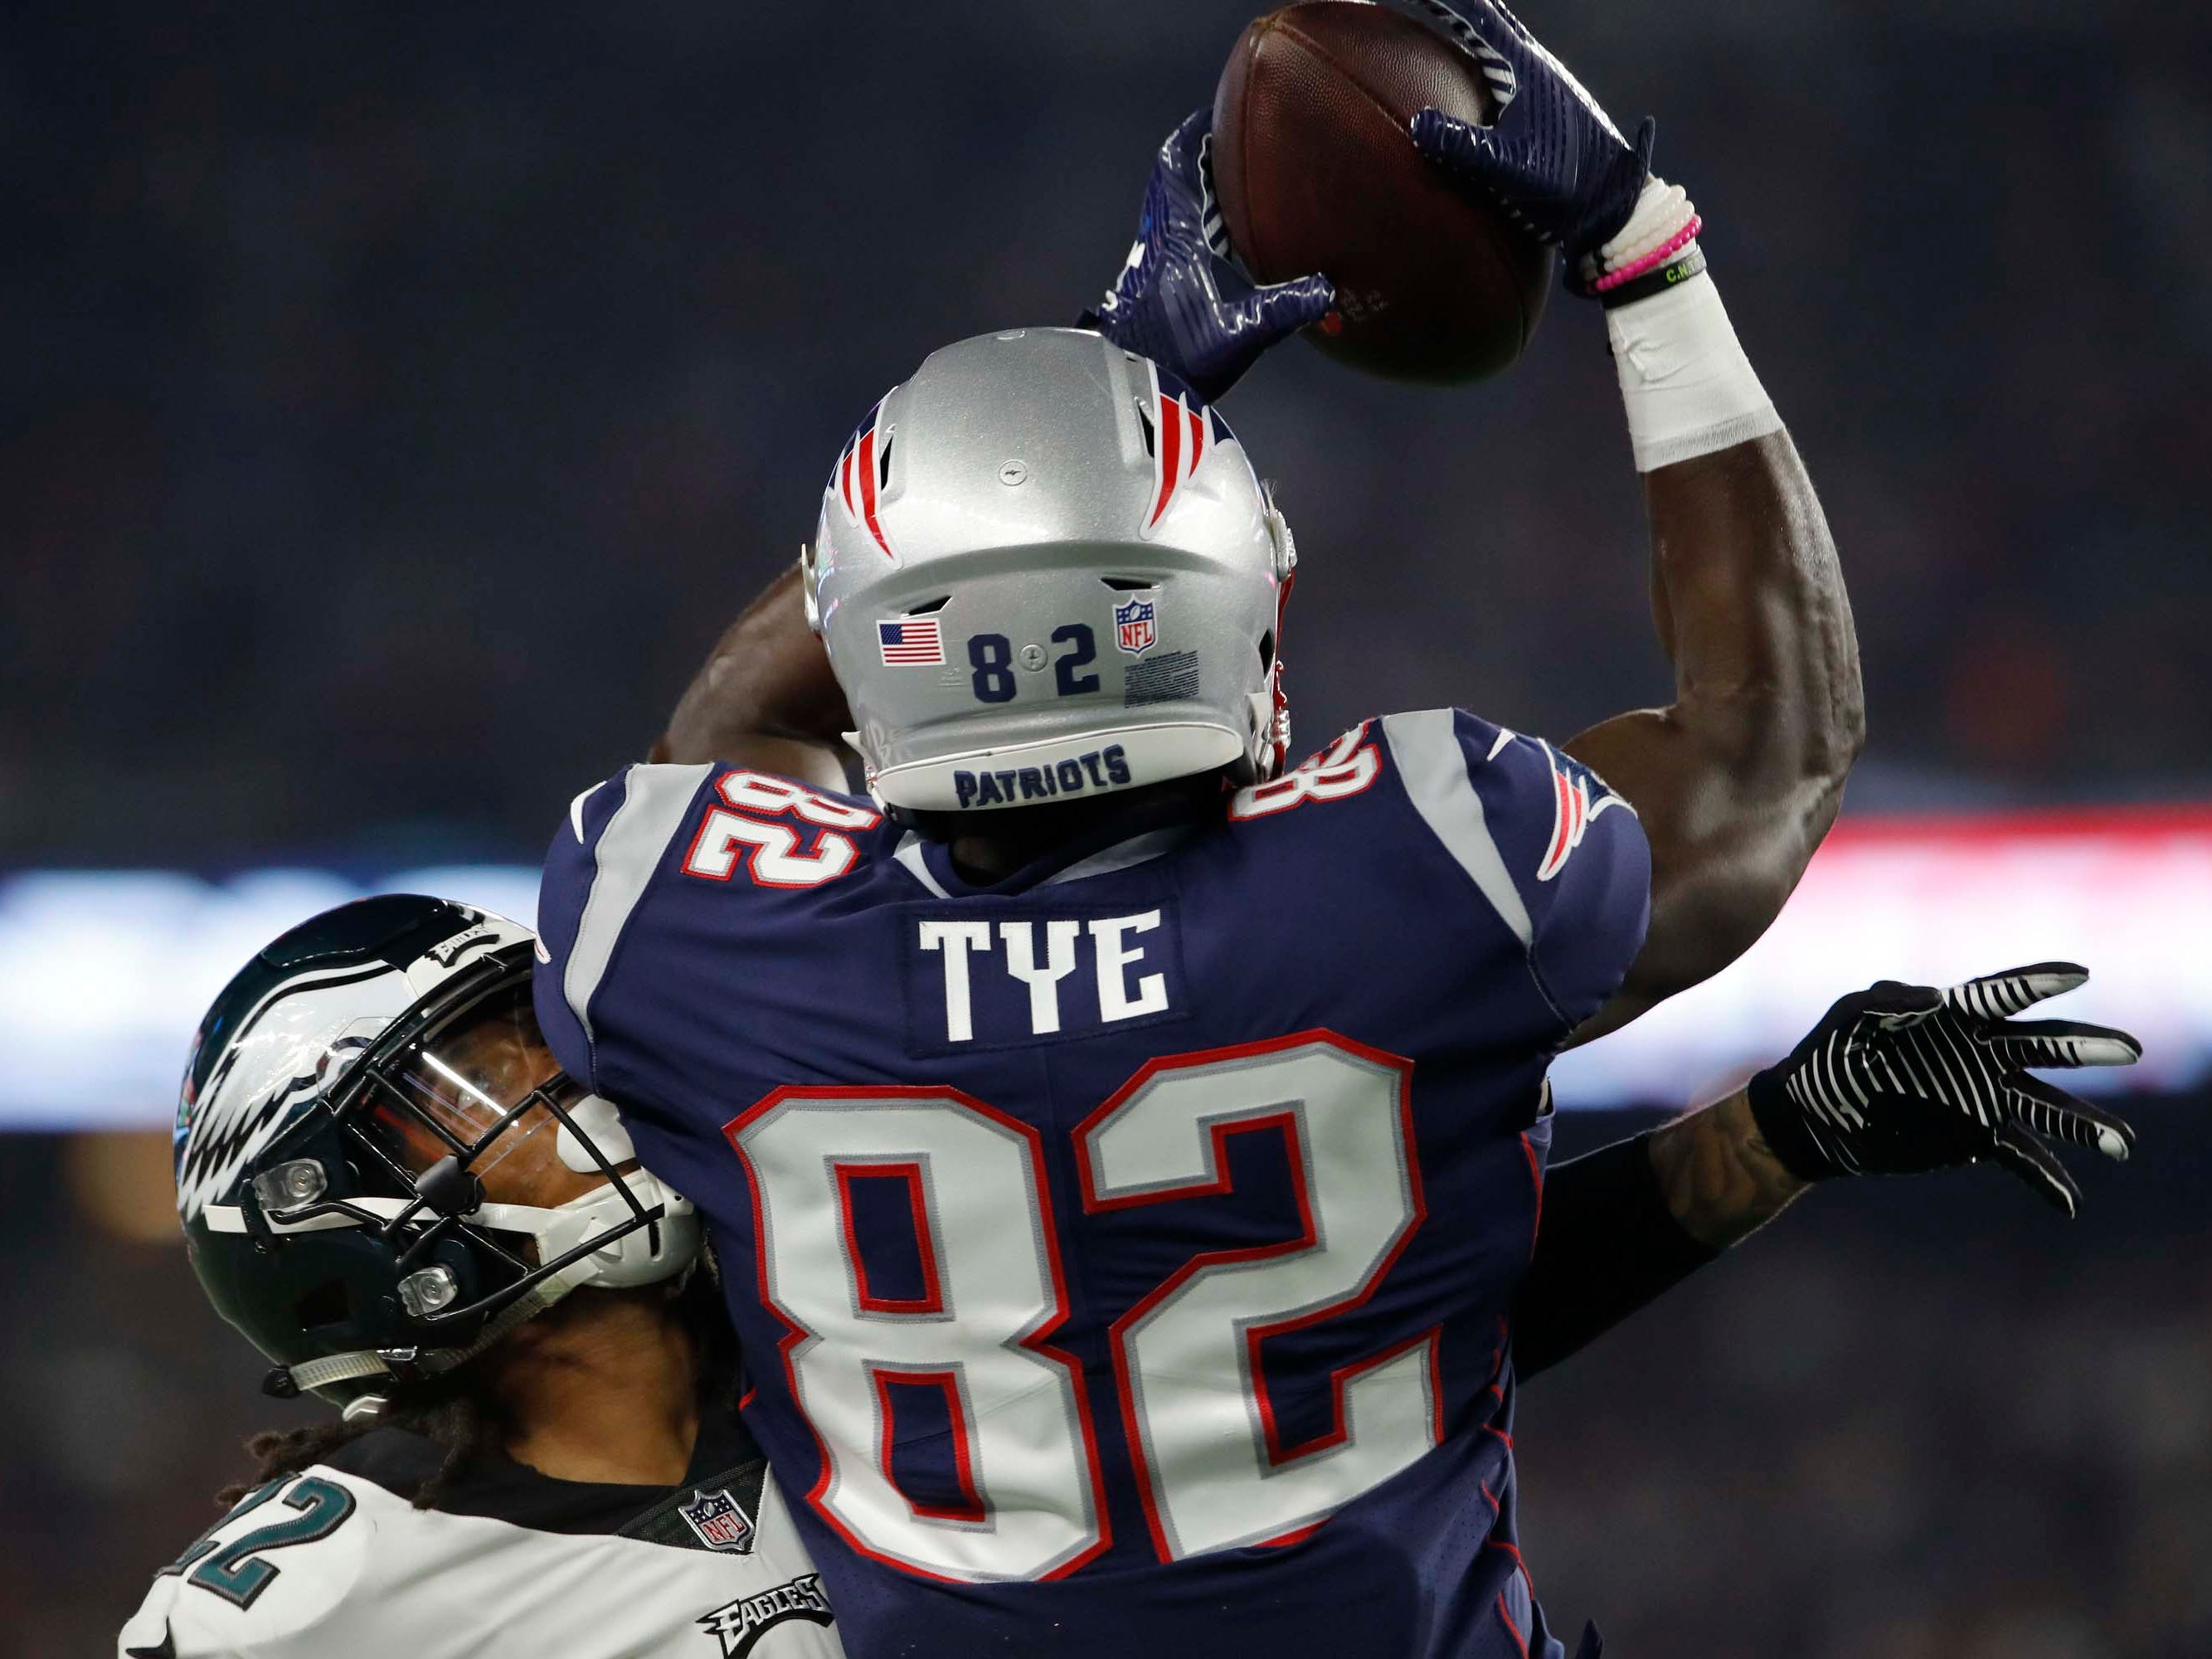 New England Patriots tight end Will Tye makes the catch against Philadelphia Eagles cornerback Sidney Jones in the second quarter at Gillette Stadium.